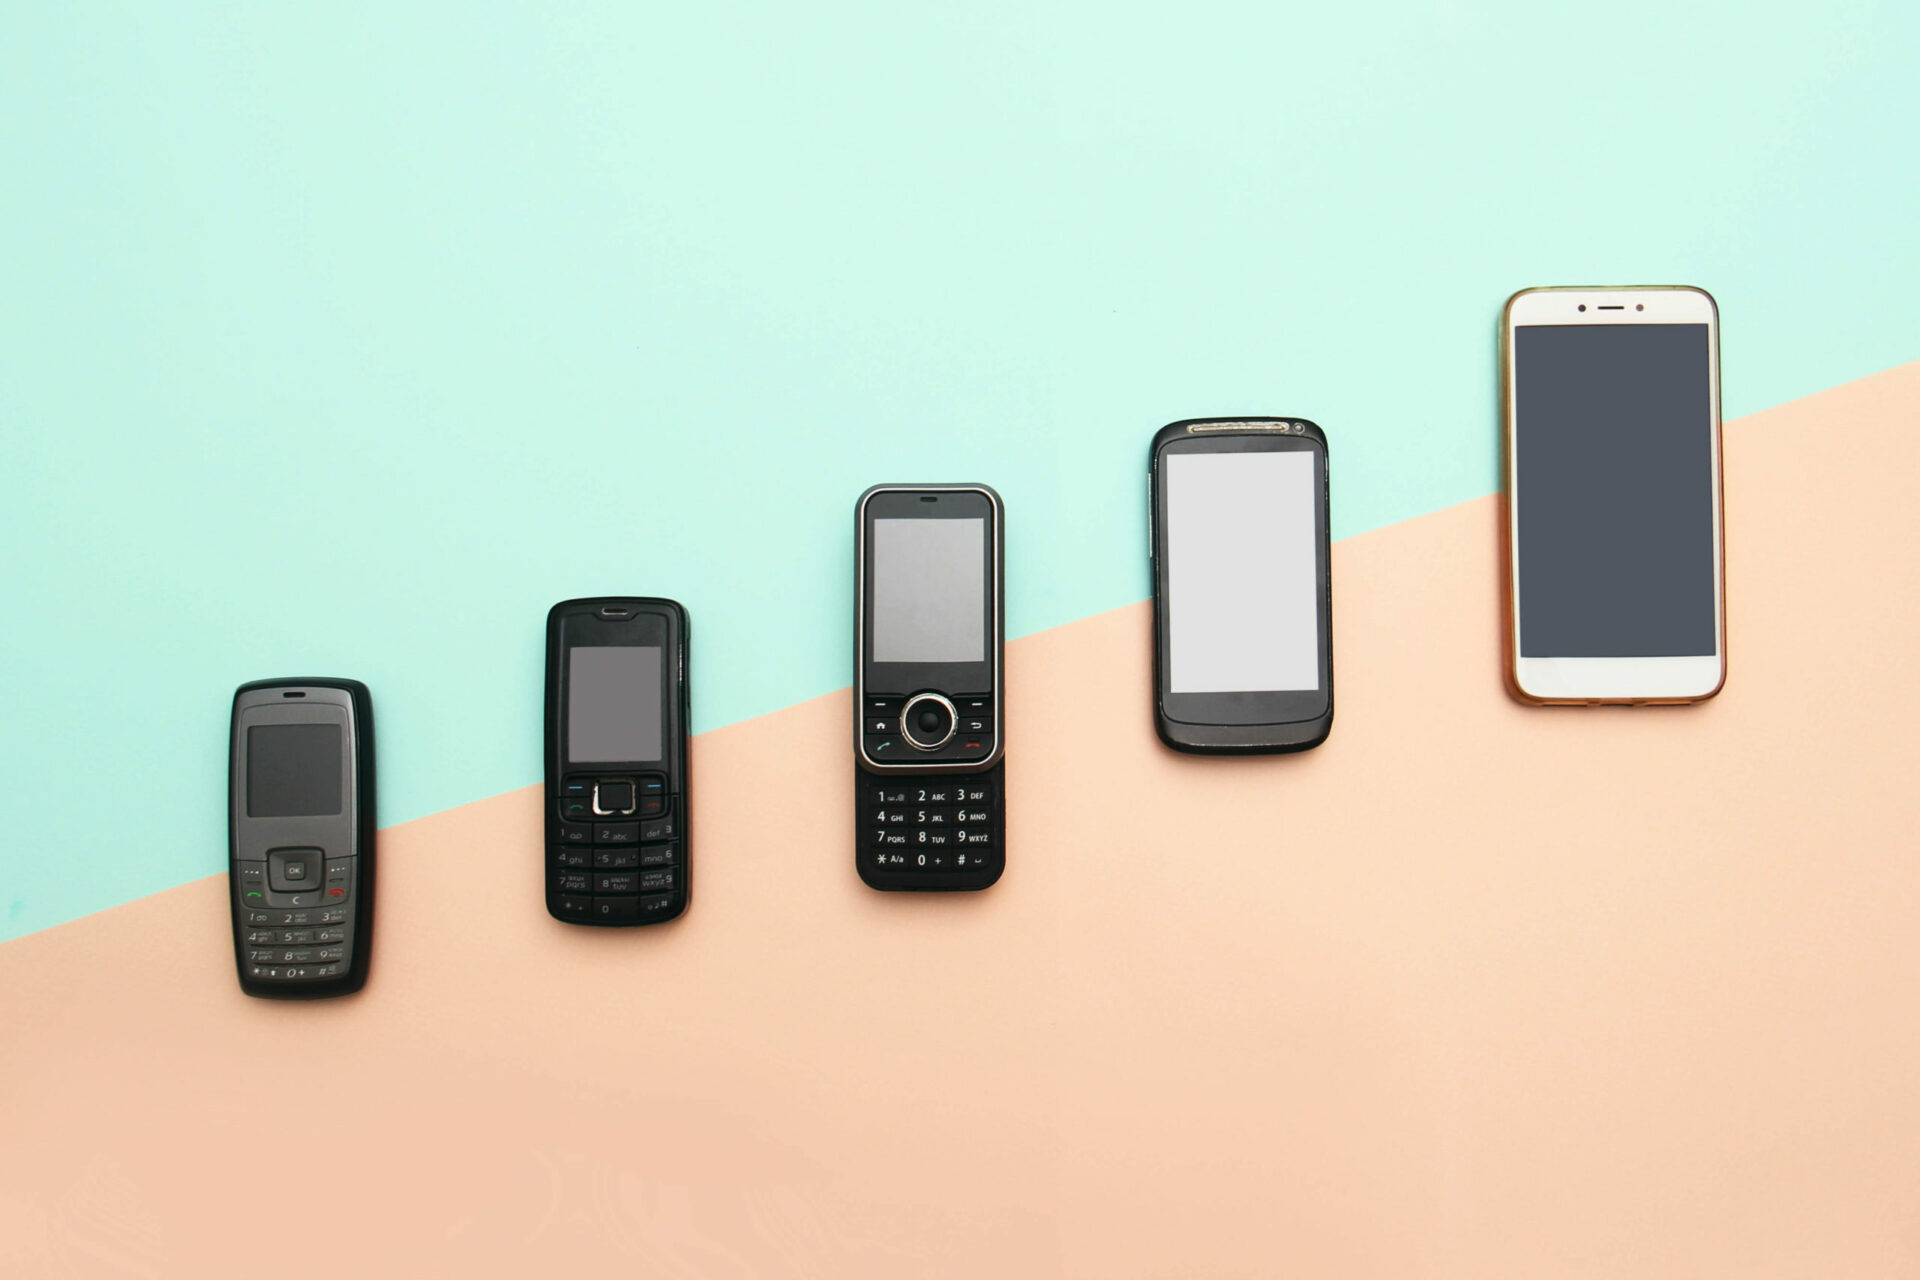 Evolution,Of,Cell,Phones.,Technology,Development,Telephone,And,Pda,Concept.